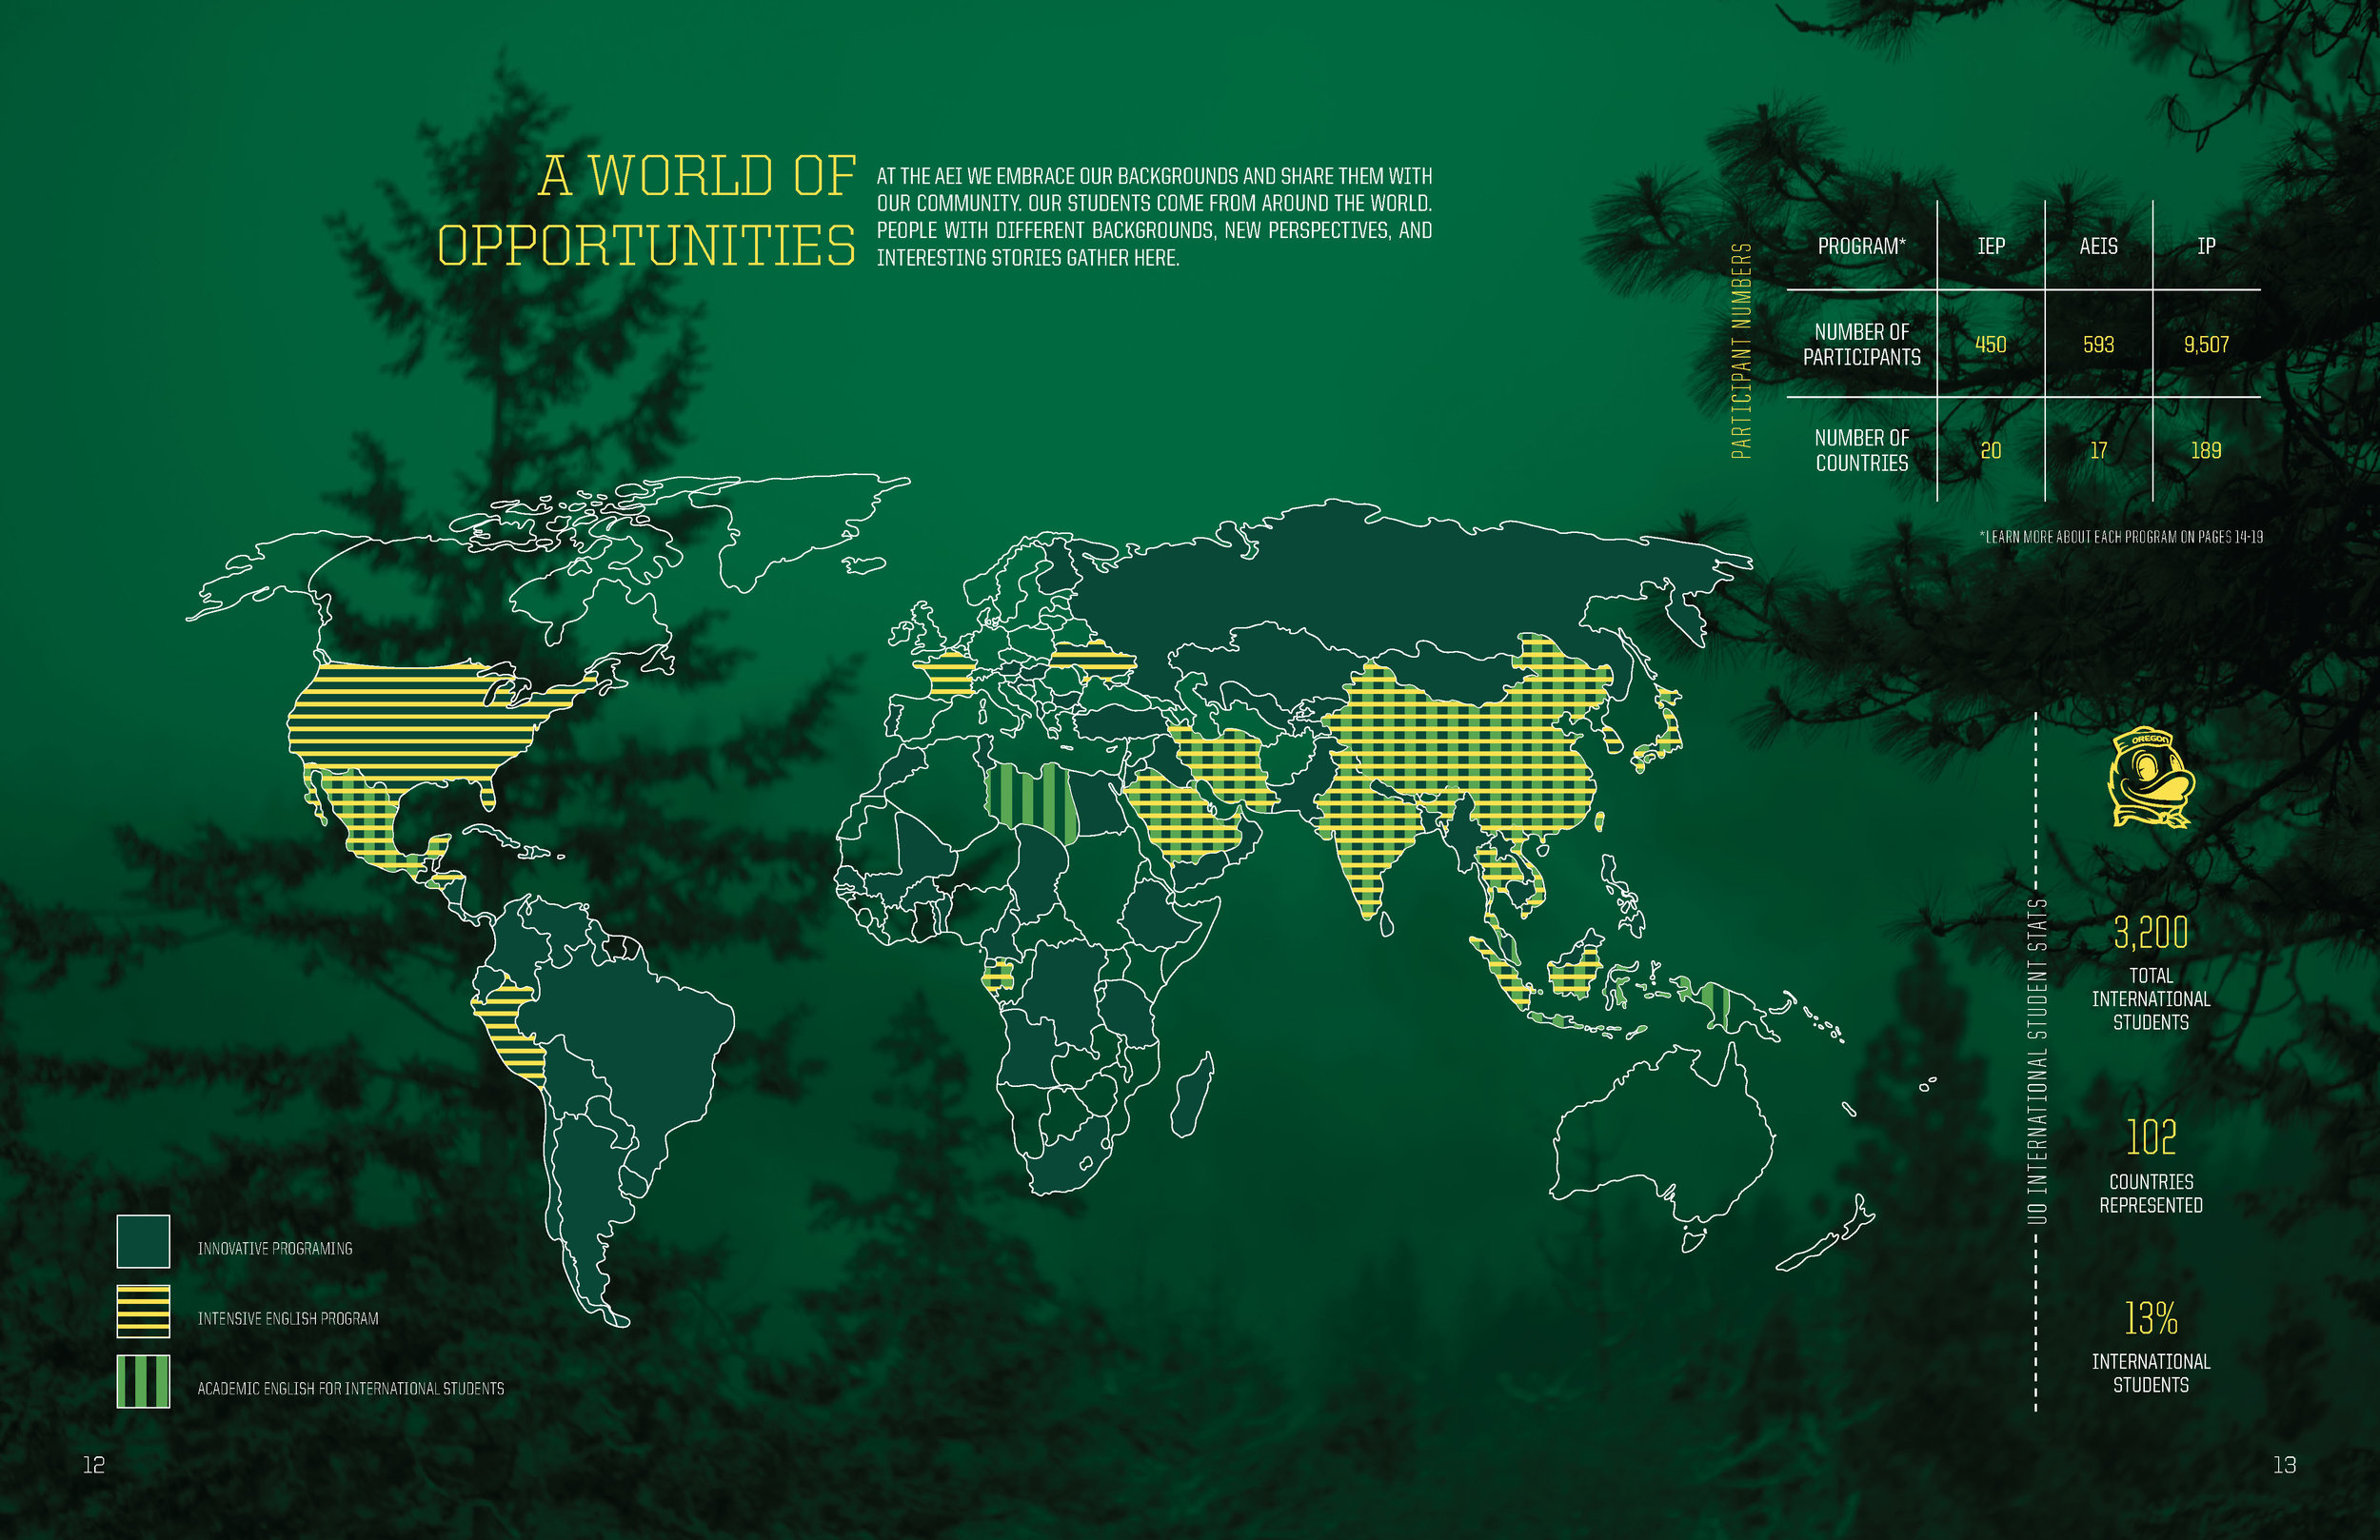 AEI Annual Report spreads_Page_07.jpg